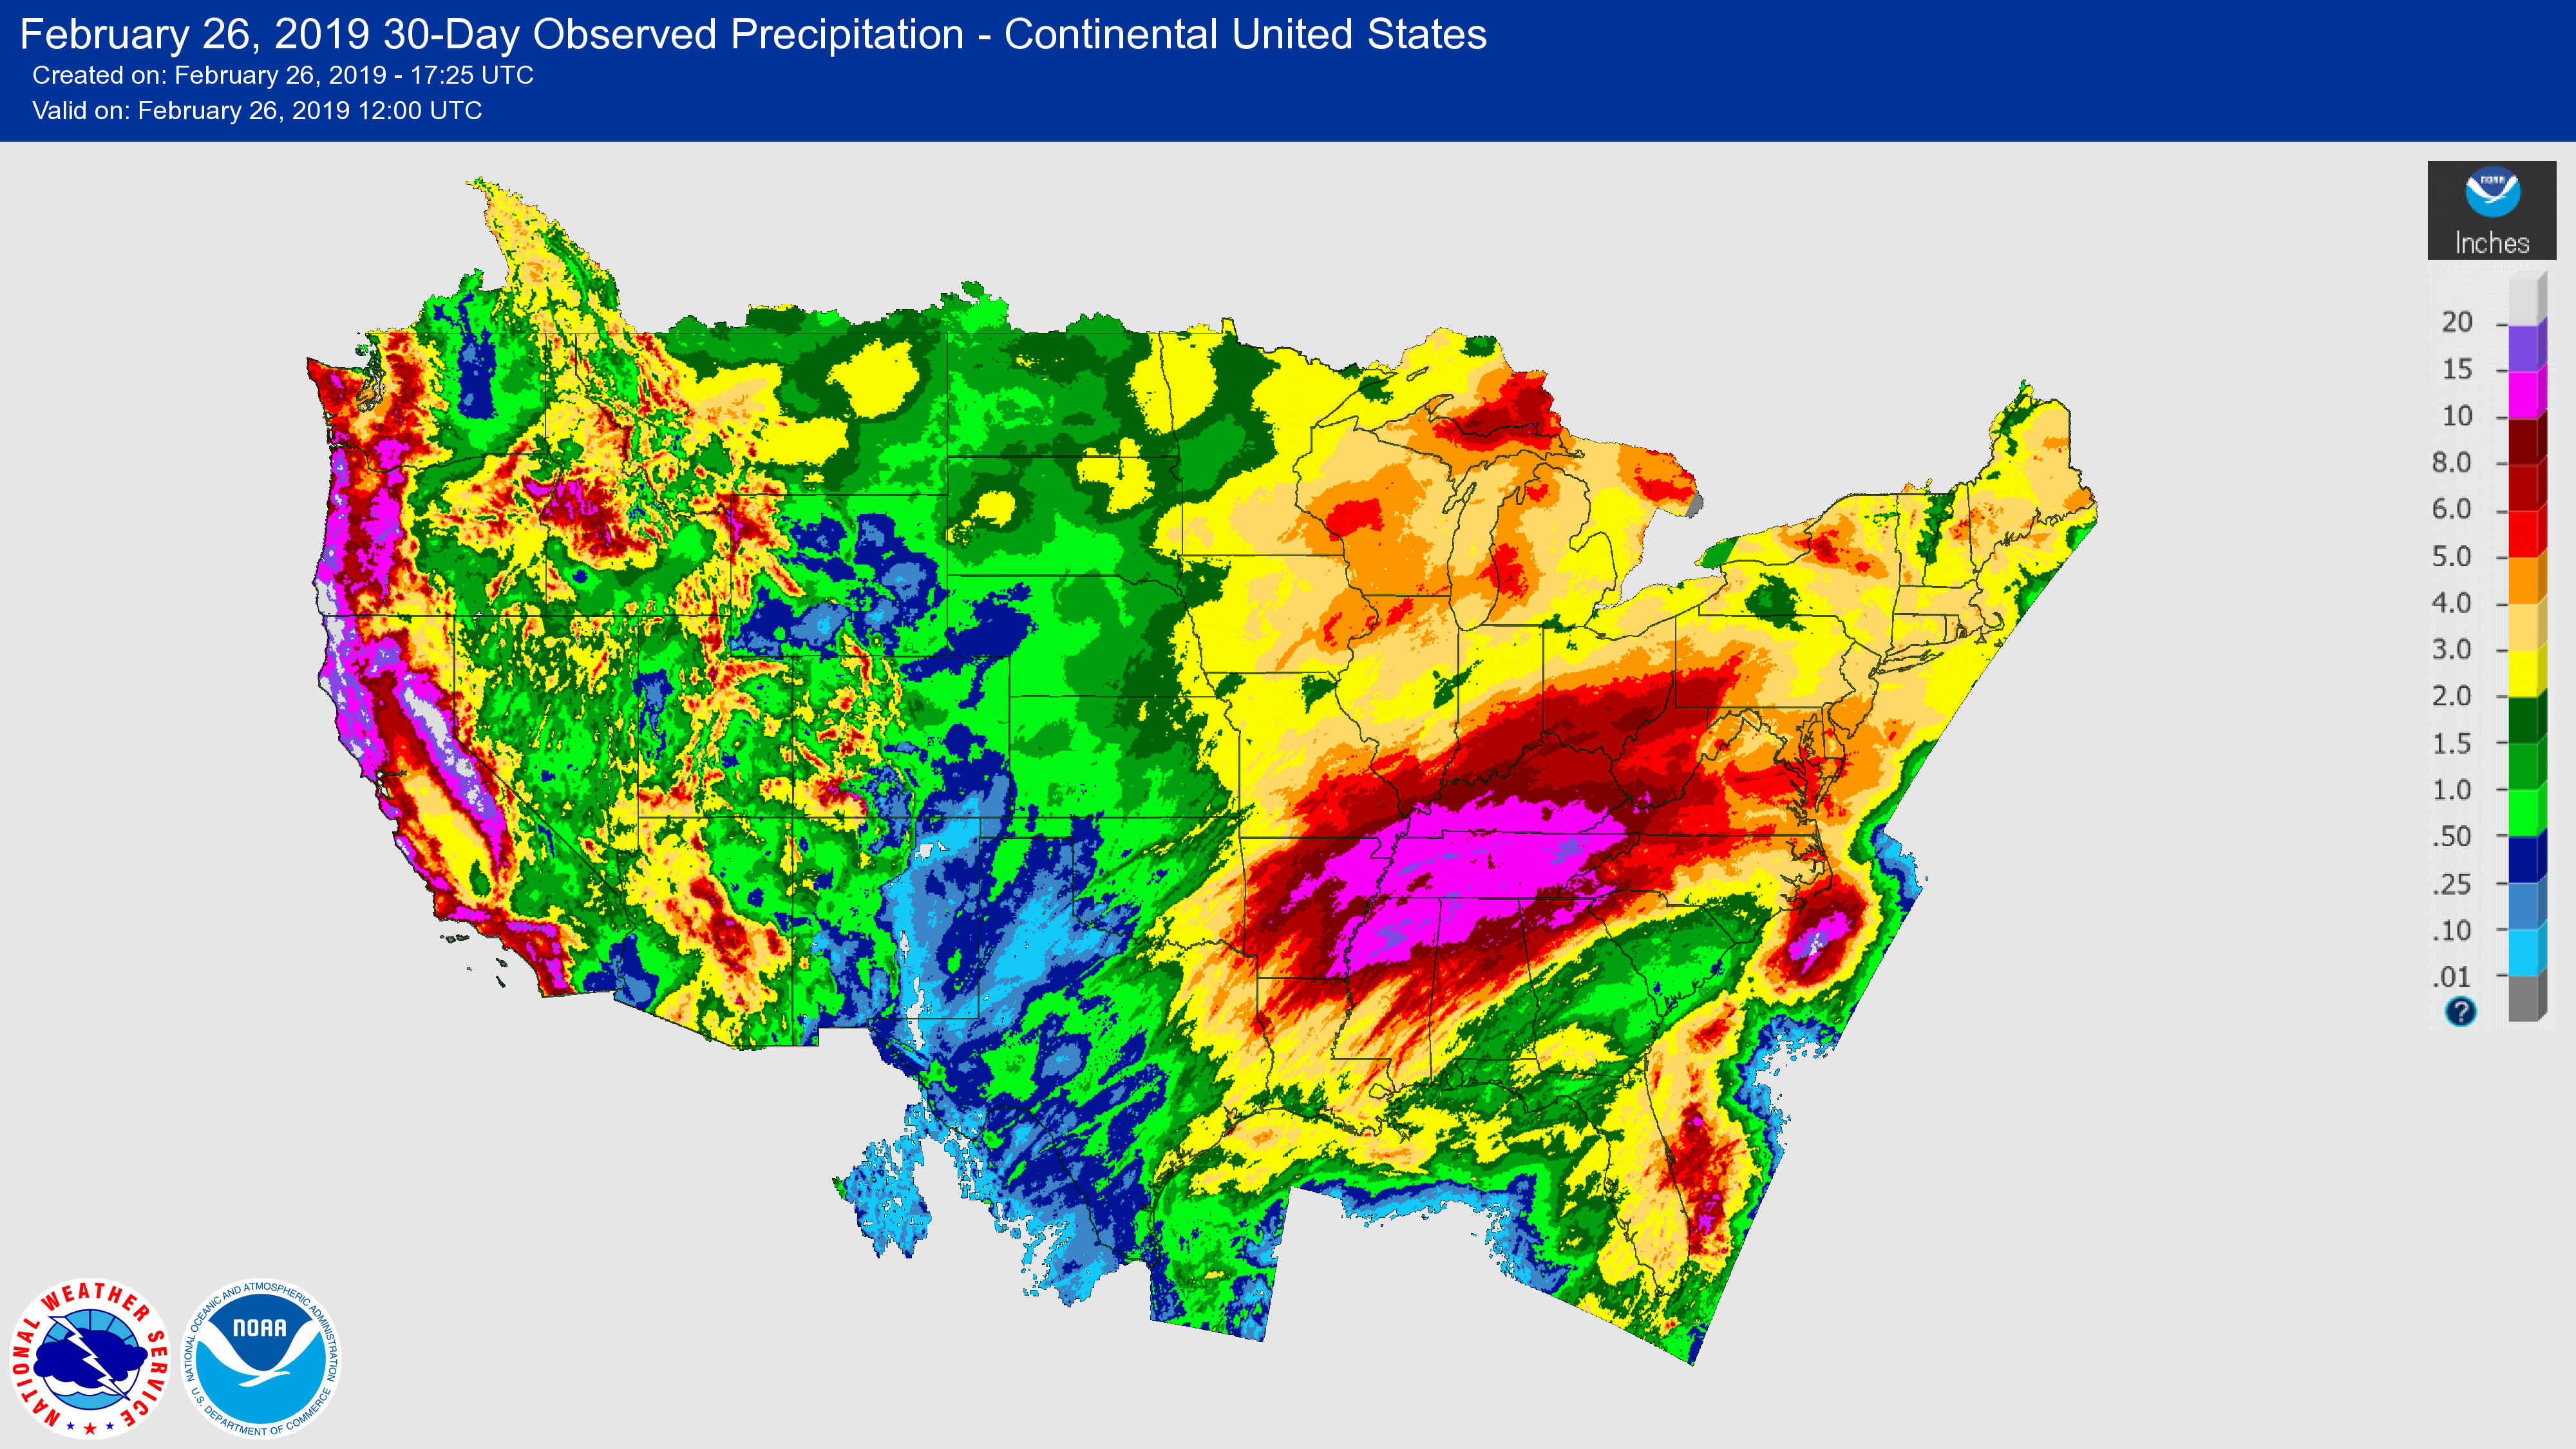 Satellite Images Show Major Flooding Along Rivers in the Southeast on map of the country, map of america, map of guam, map of the philippines, map of the east coast, map of the states and capitals, map of the bahamas, map of the continents, map of the northeast, map of the us states, map of bermuda, map of the caribbean, map of the oceans, map of czech republic, map of the world, map of washington, map of the mason dixon line, map of usa, map of the great lakes, map of the earth,